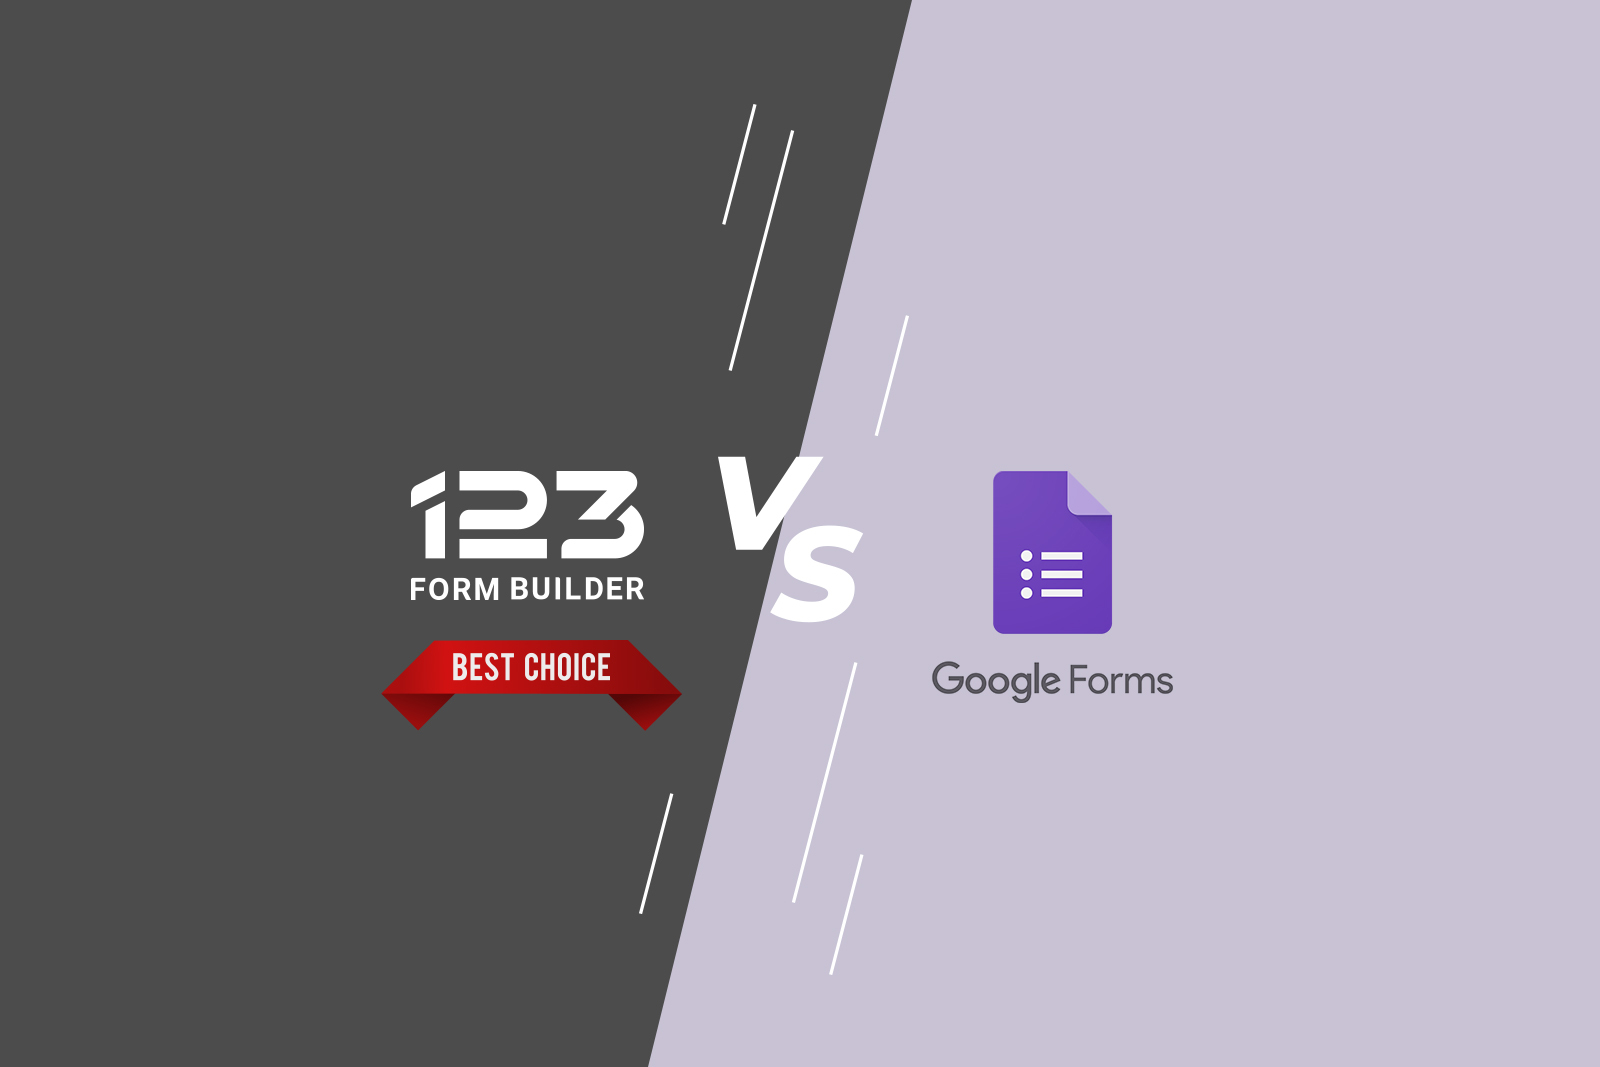 Google Forms alternatives: Why Choosing (and Staying with) 123 Form Builder Wins